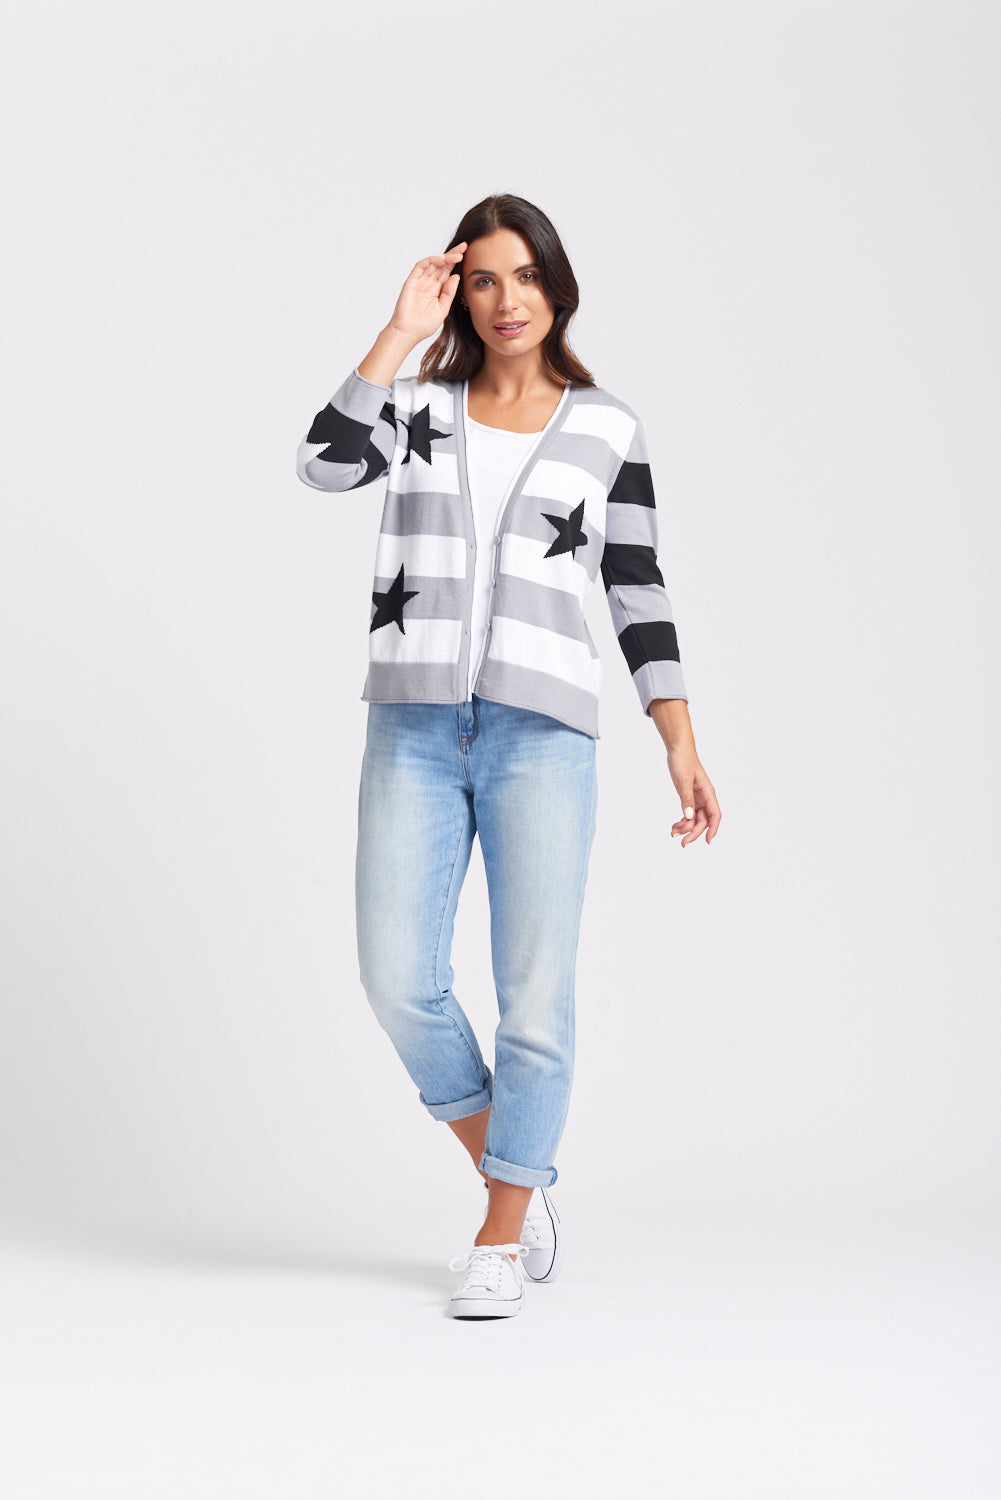 Stars & Stripes Cardigan - Pewter